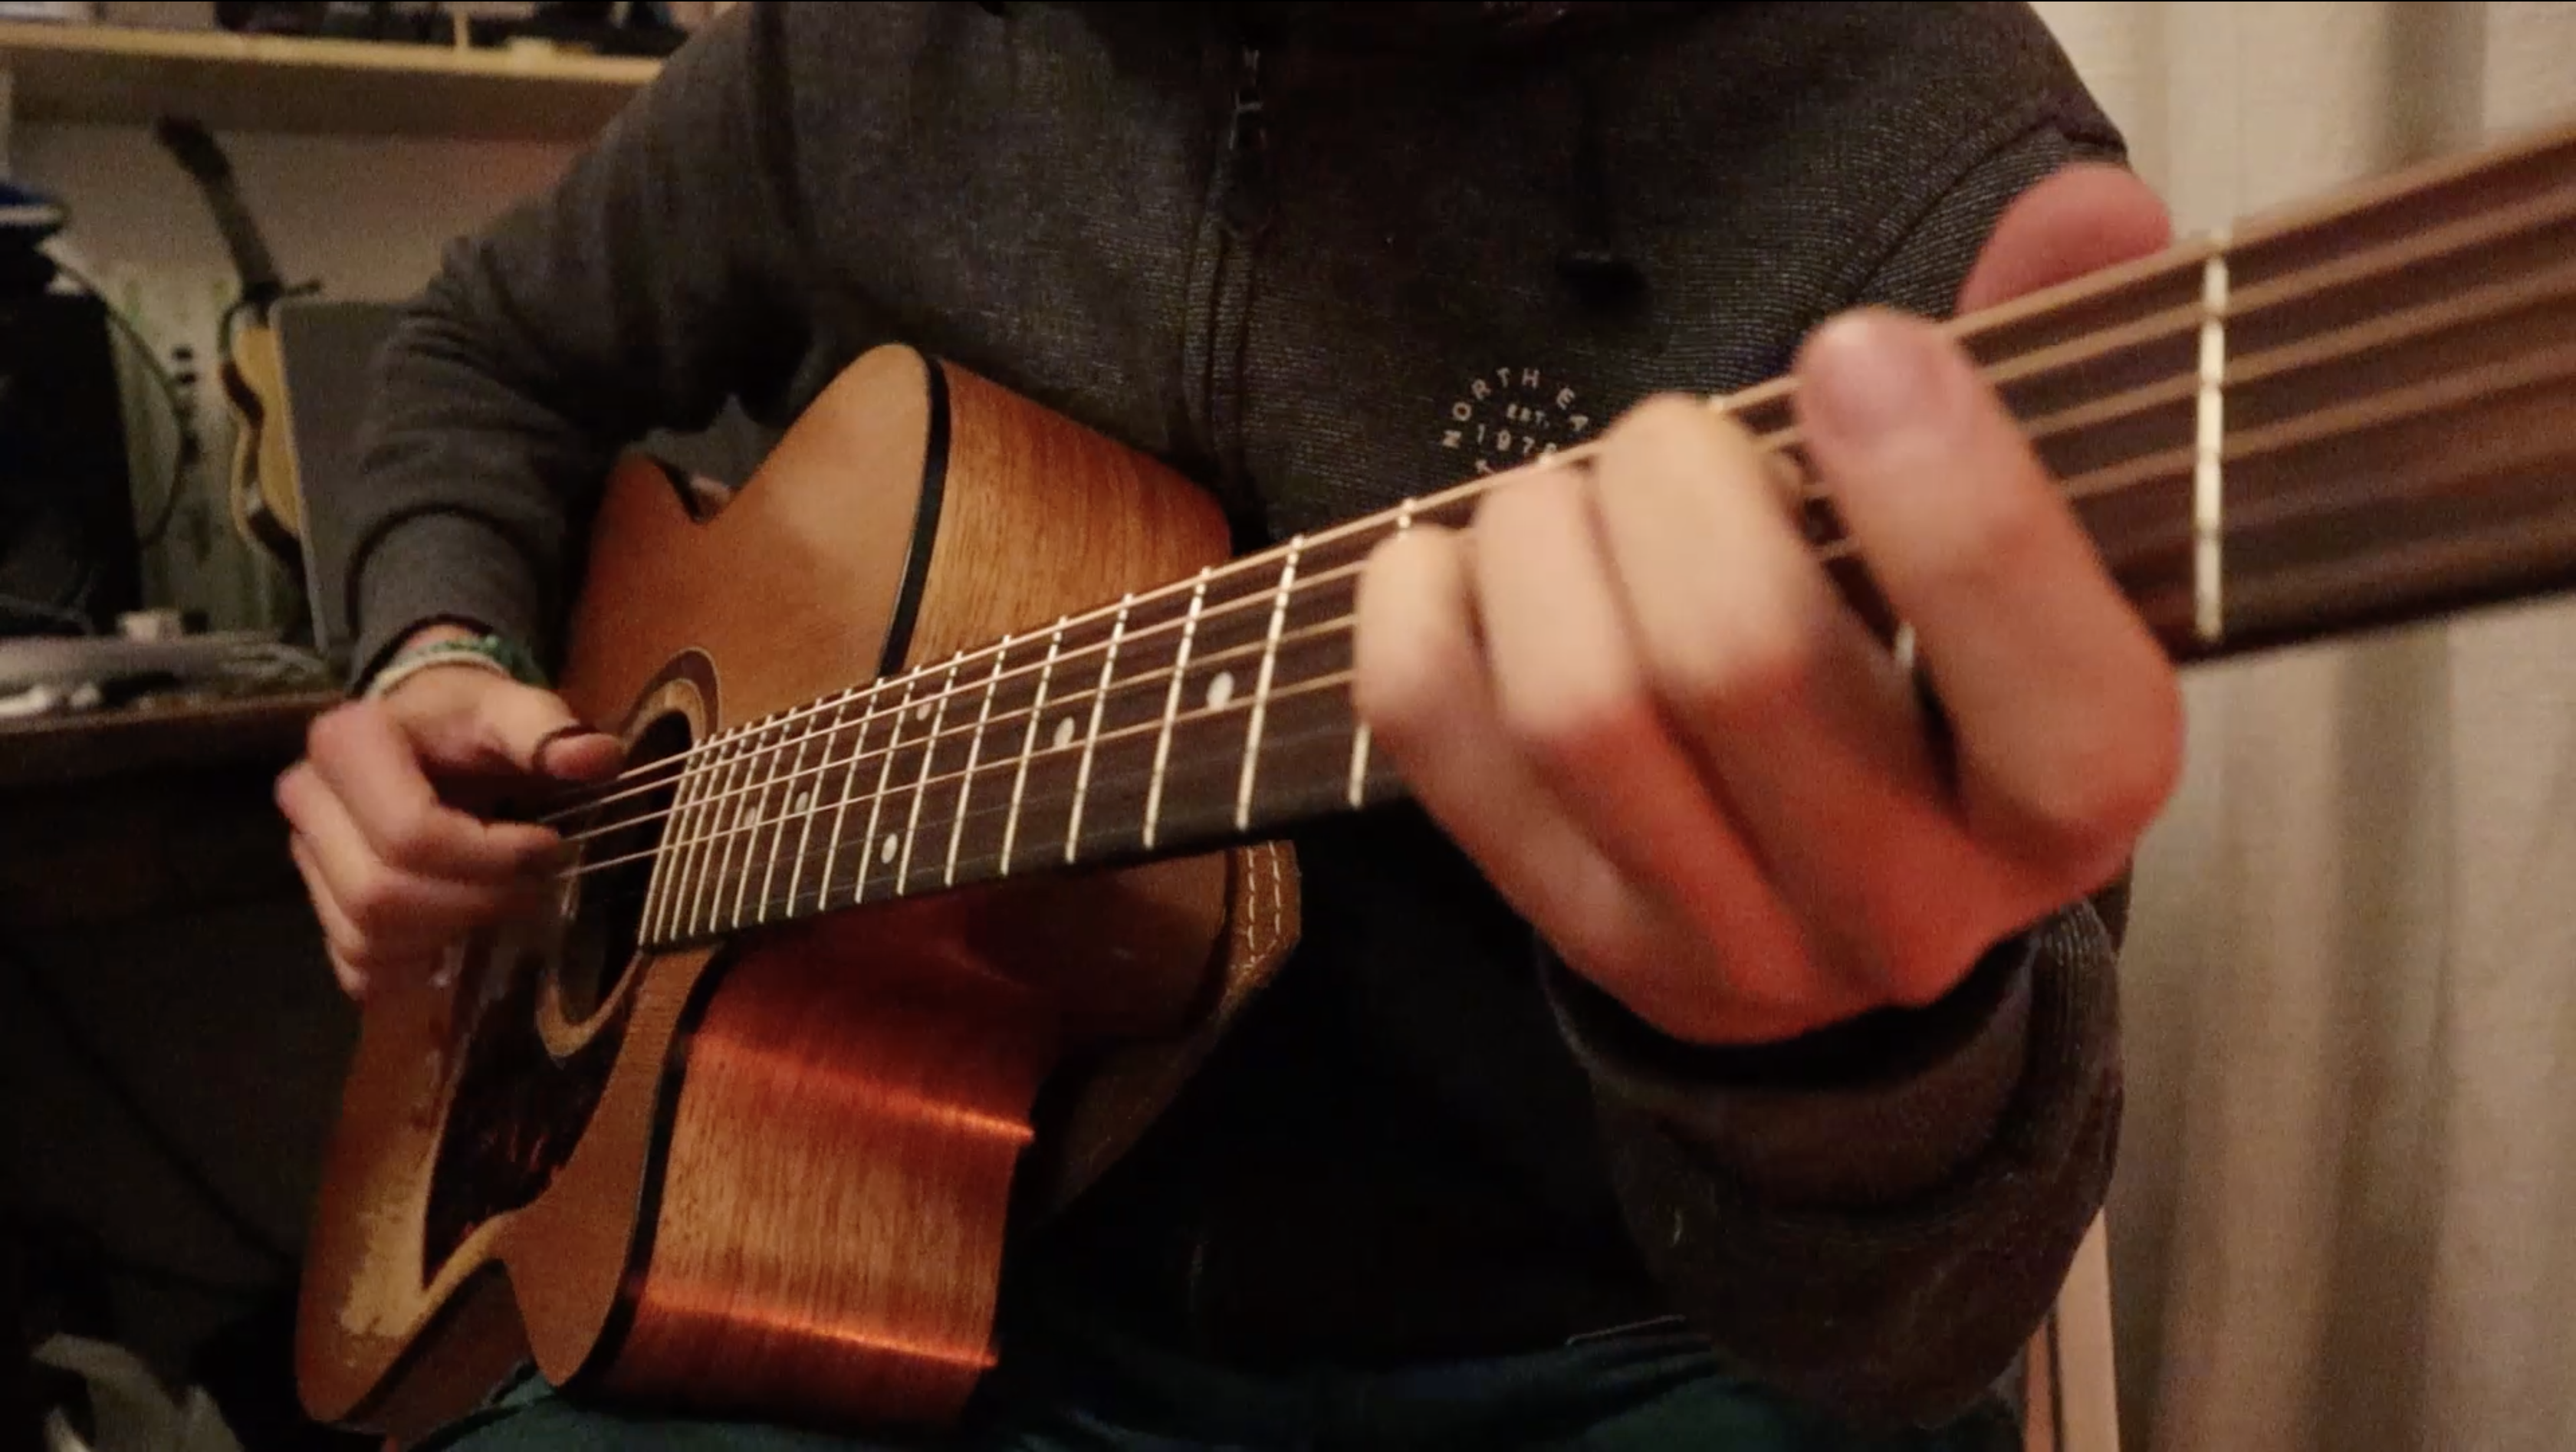 Electronic Beat on Acoustic Guitar | Composition Idea